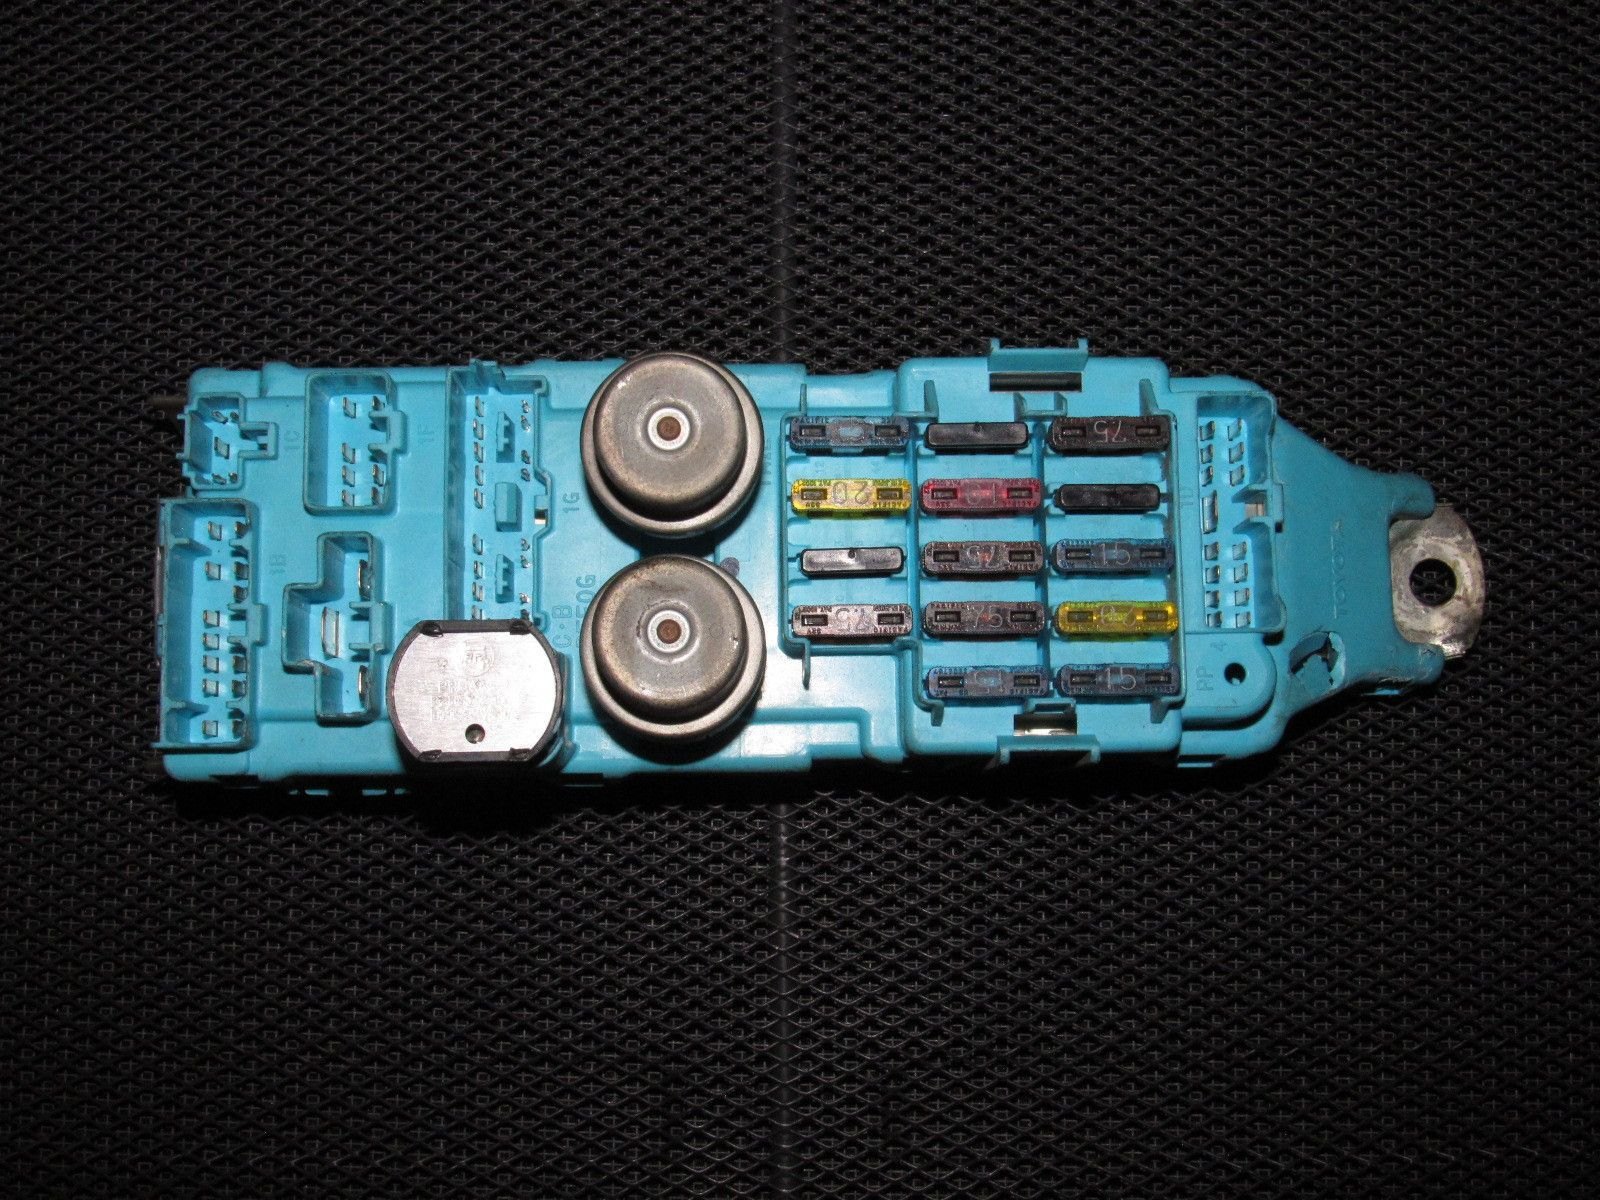 86 87 88 toyota supra oem turbo interior fuse box products 86 87 88 toyota supra oem turbo interior fuse box